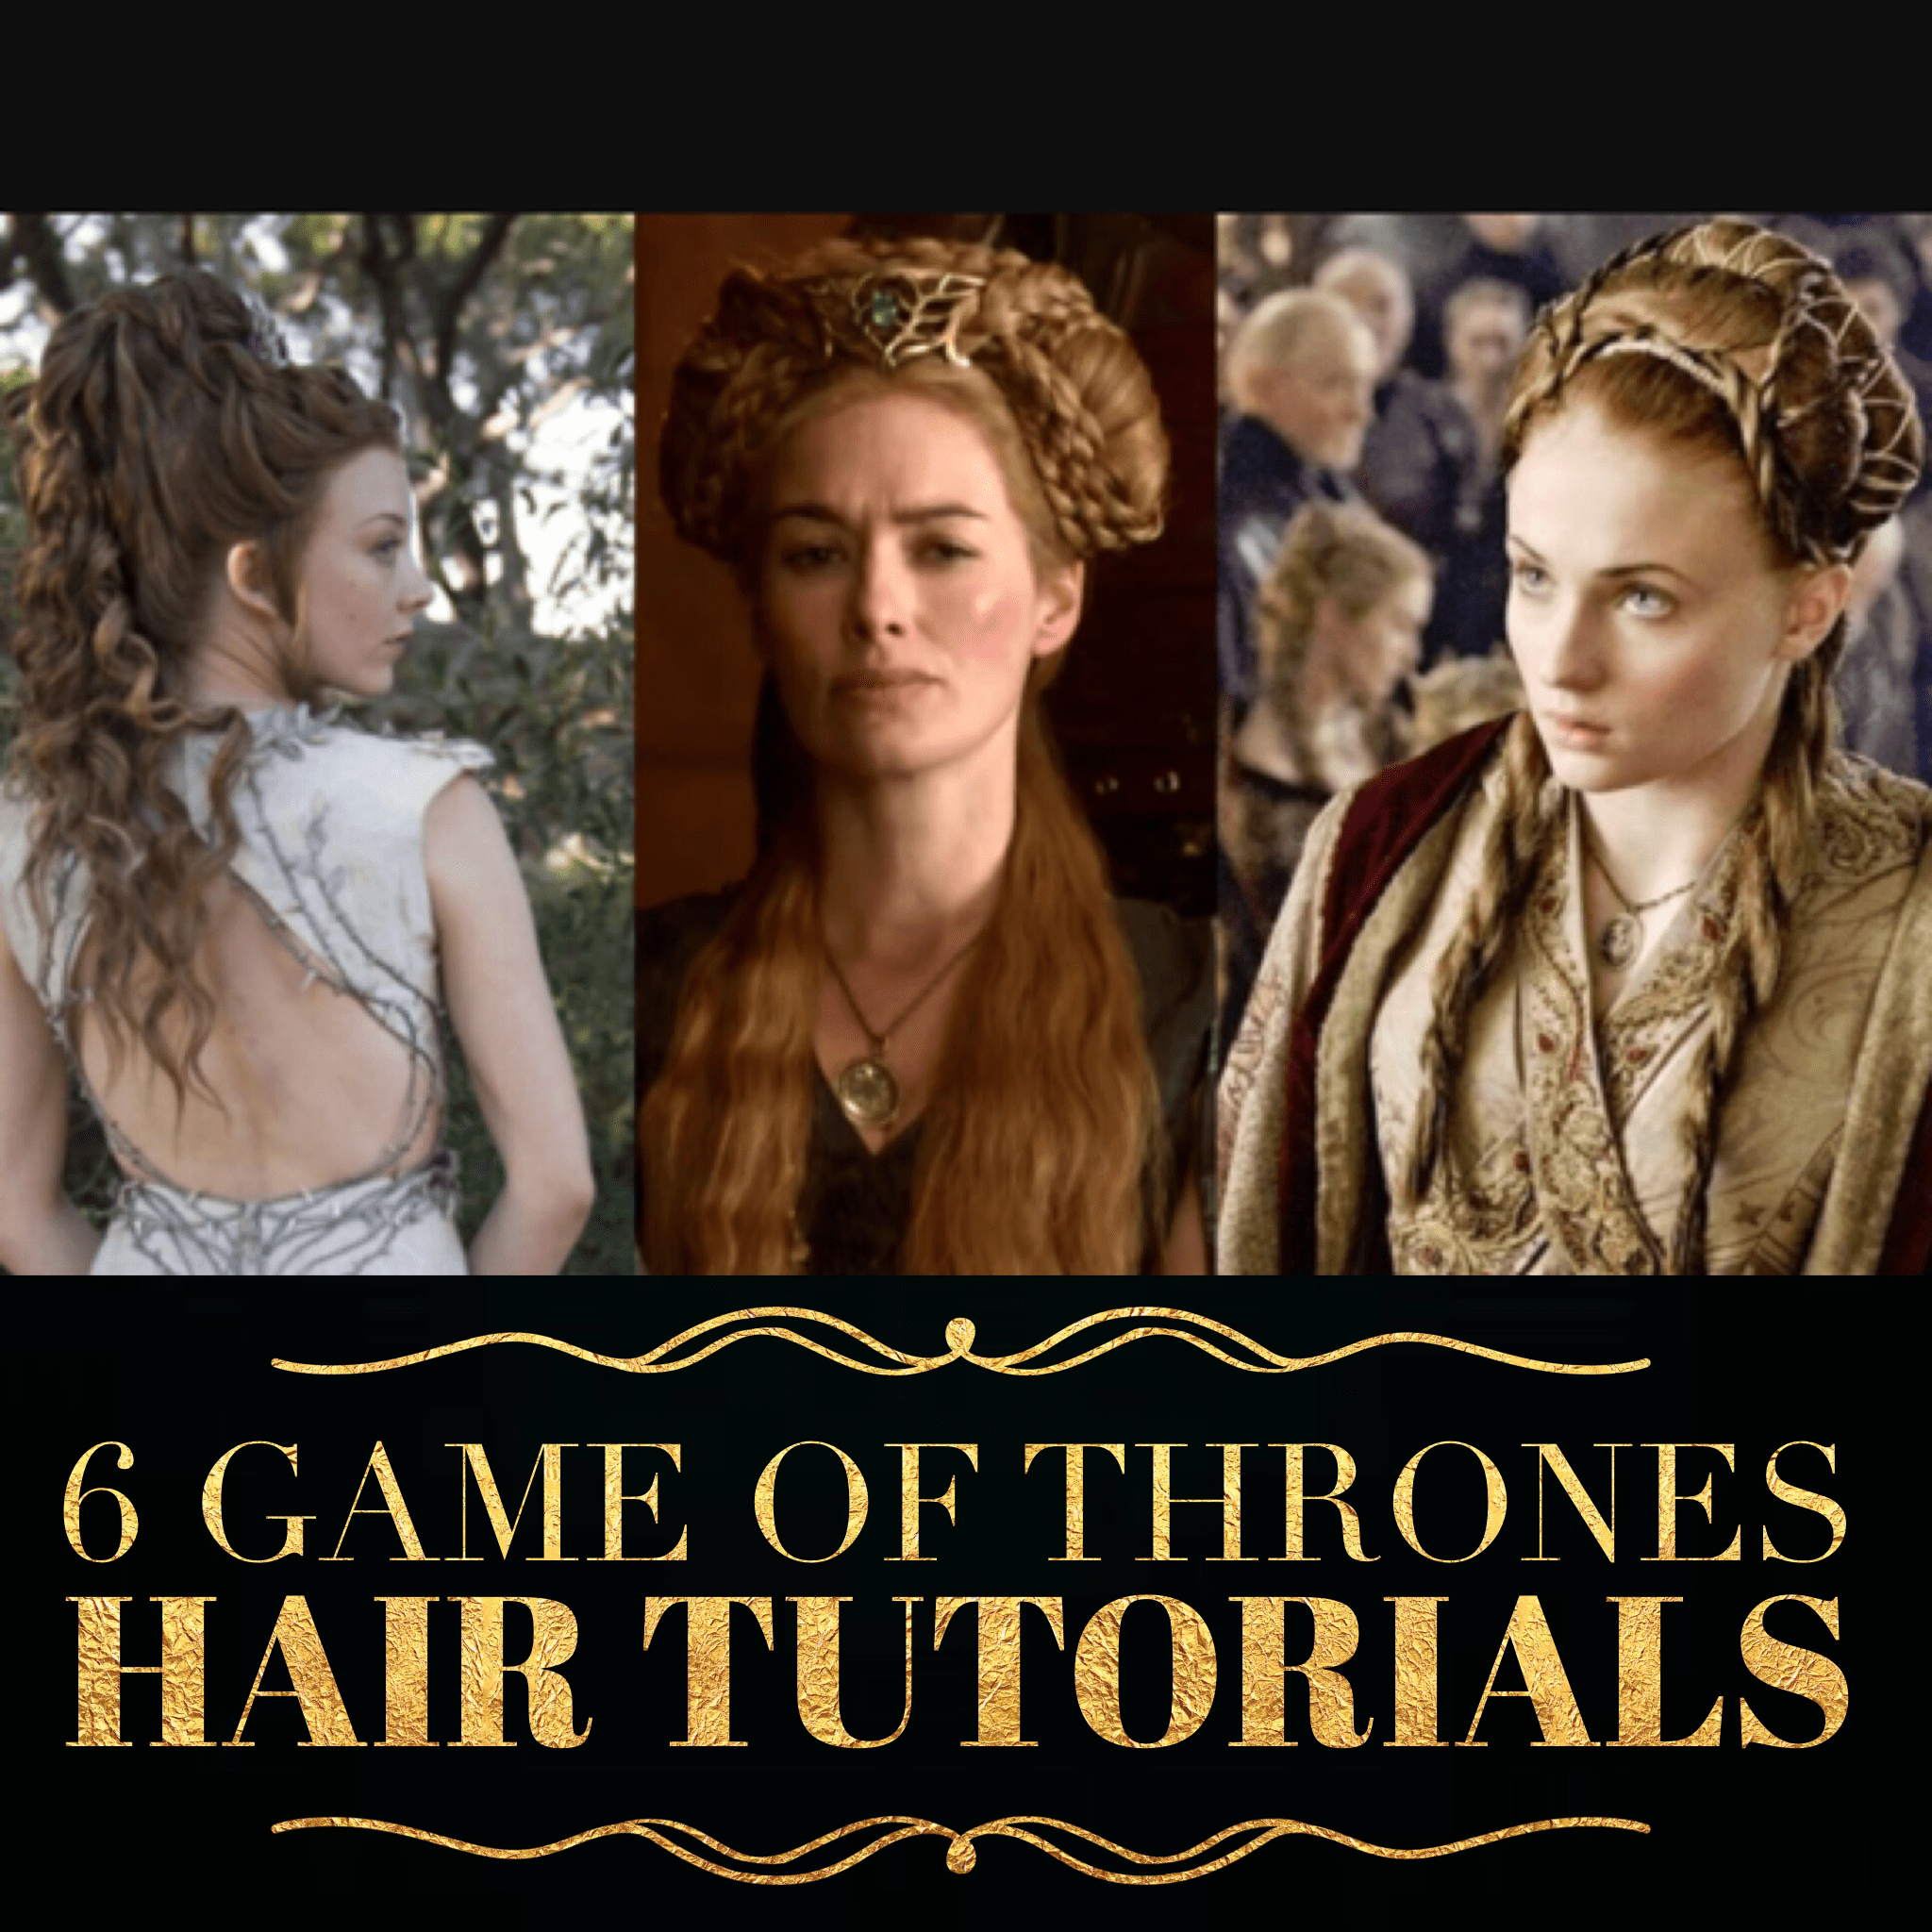 In light of the new Game of Thrones season premiering today, I decided to post 6 Game of Thrones hair tutorials!